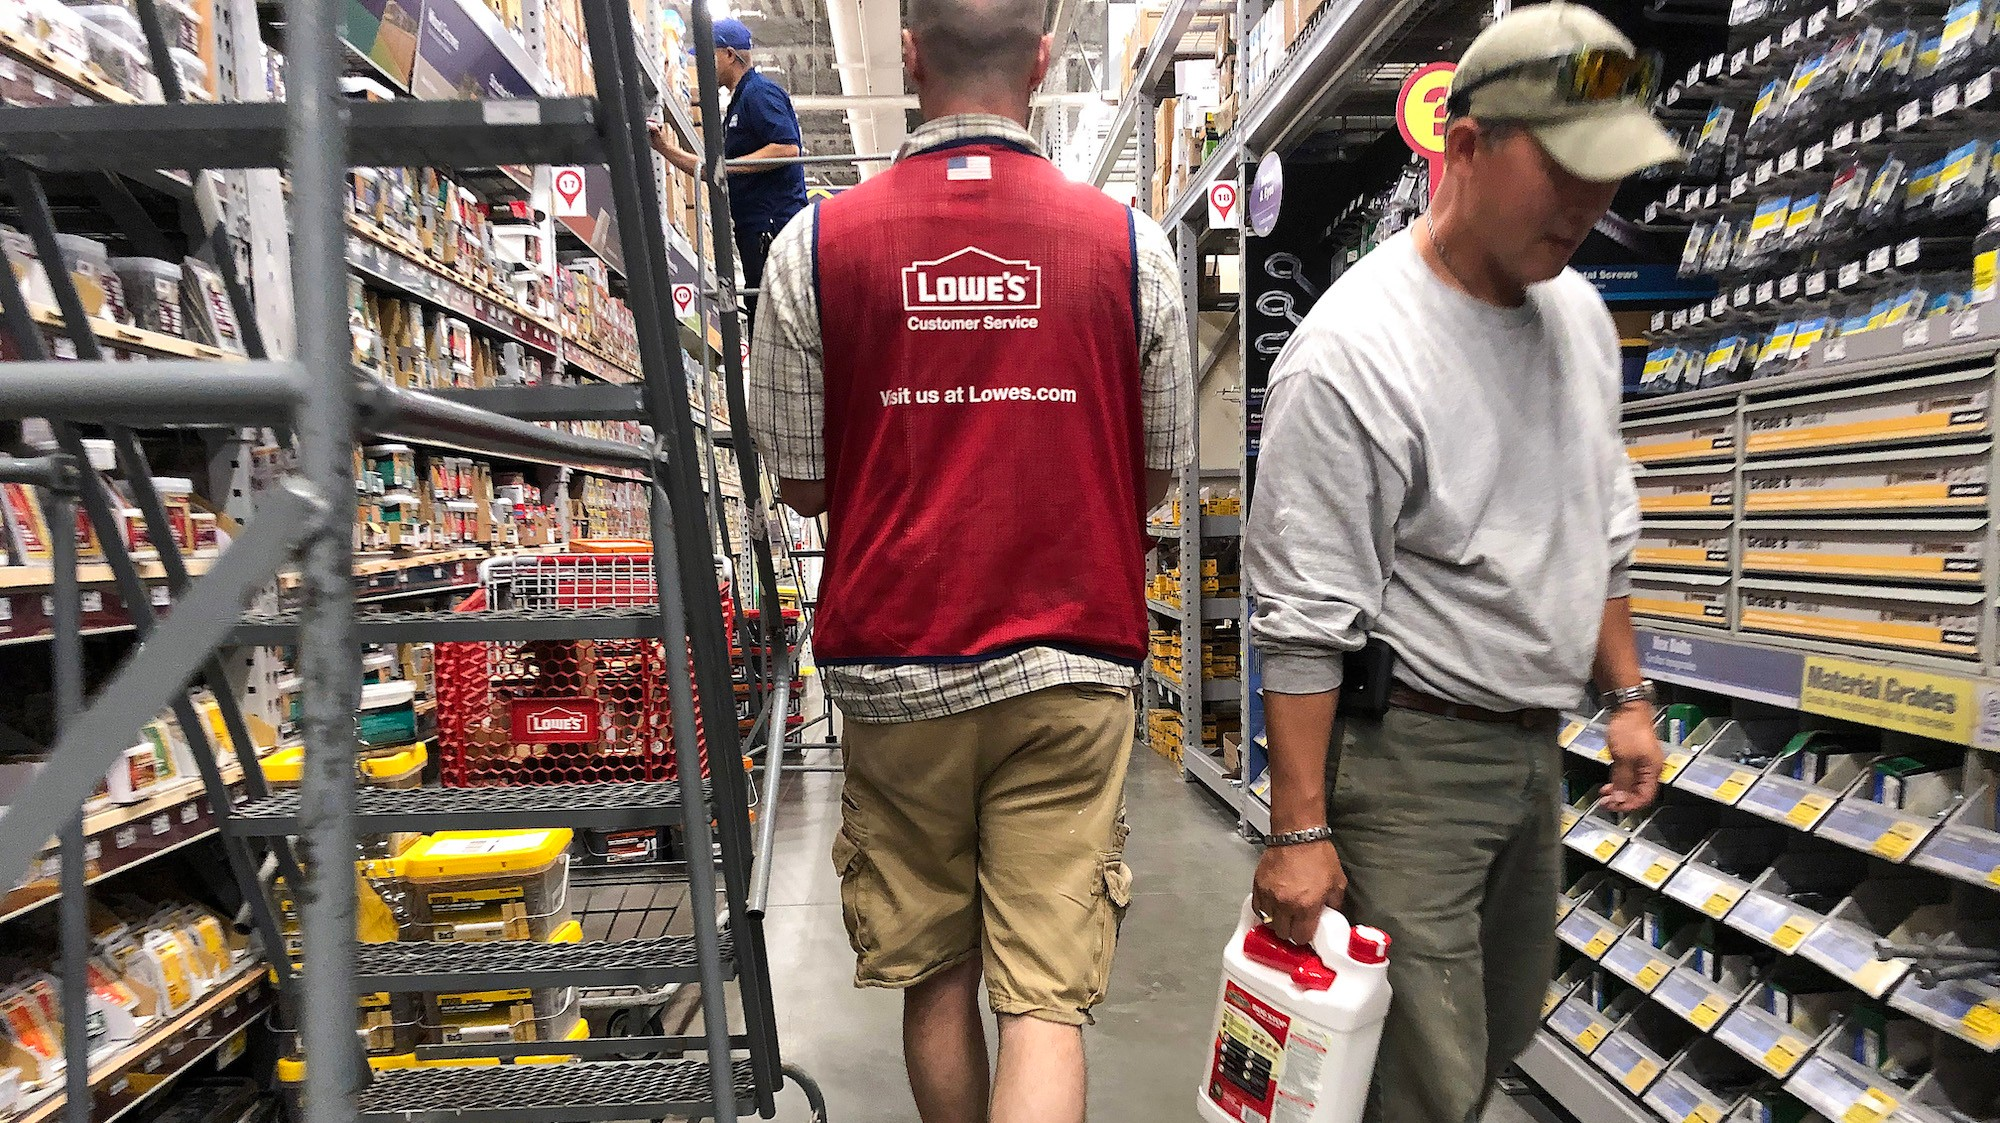 Lowe S Stores Are Staying Open During Coronavirus To Maximize Profit Employees Say The field liaison directly supports national security and suitability investigations, focusing on quality and. staying open during coronavirus